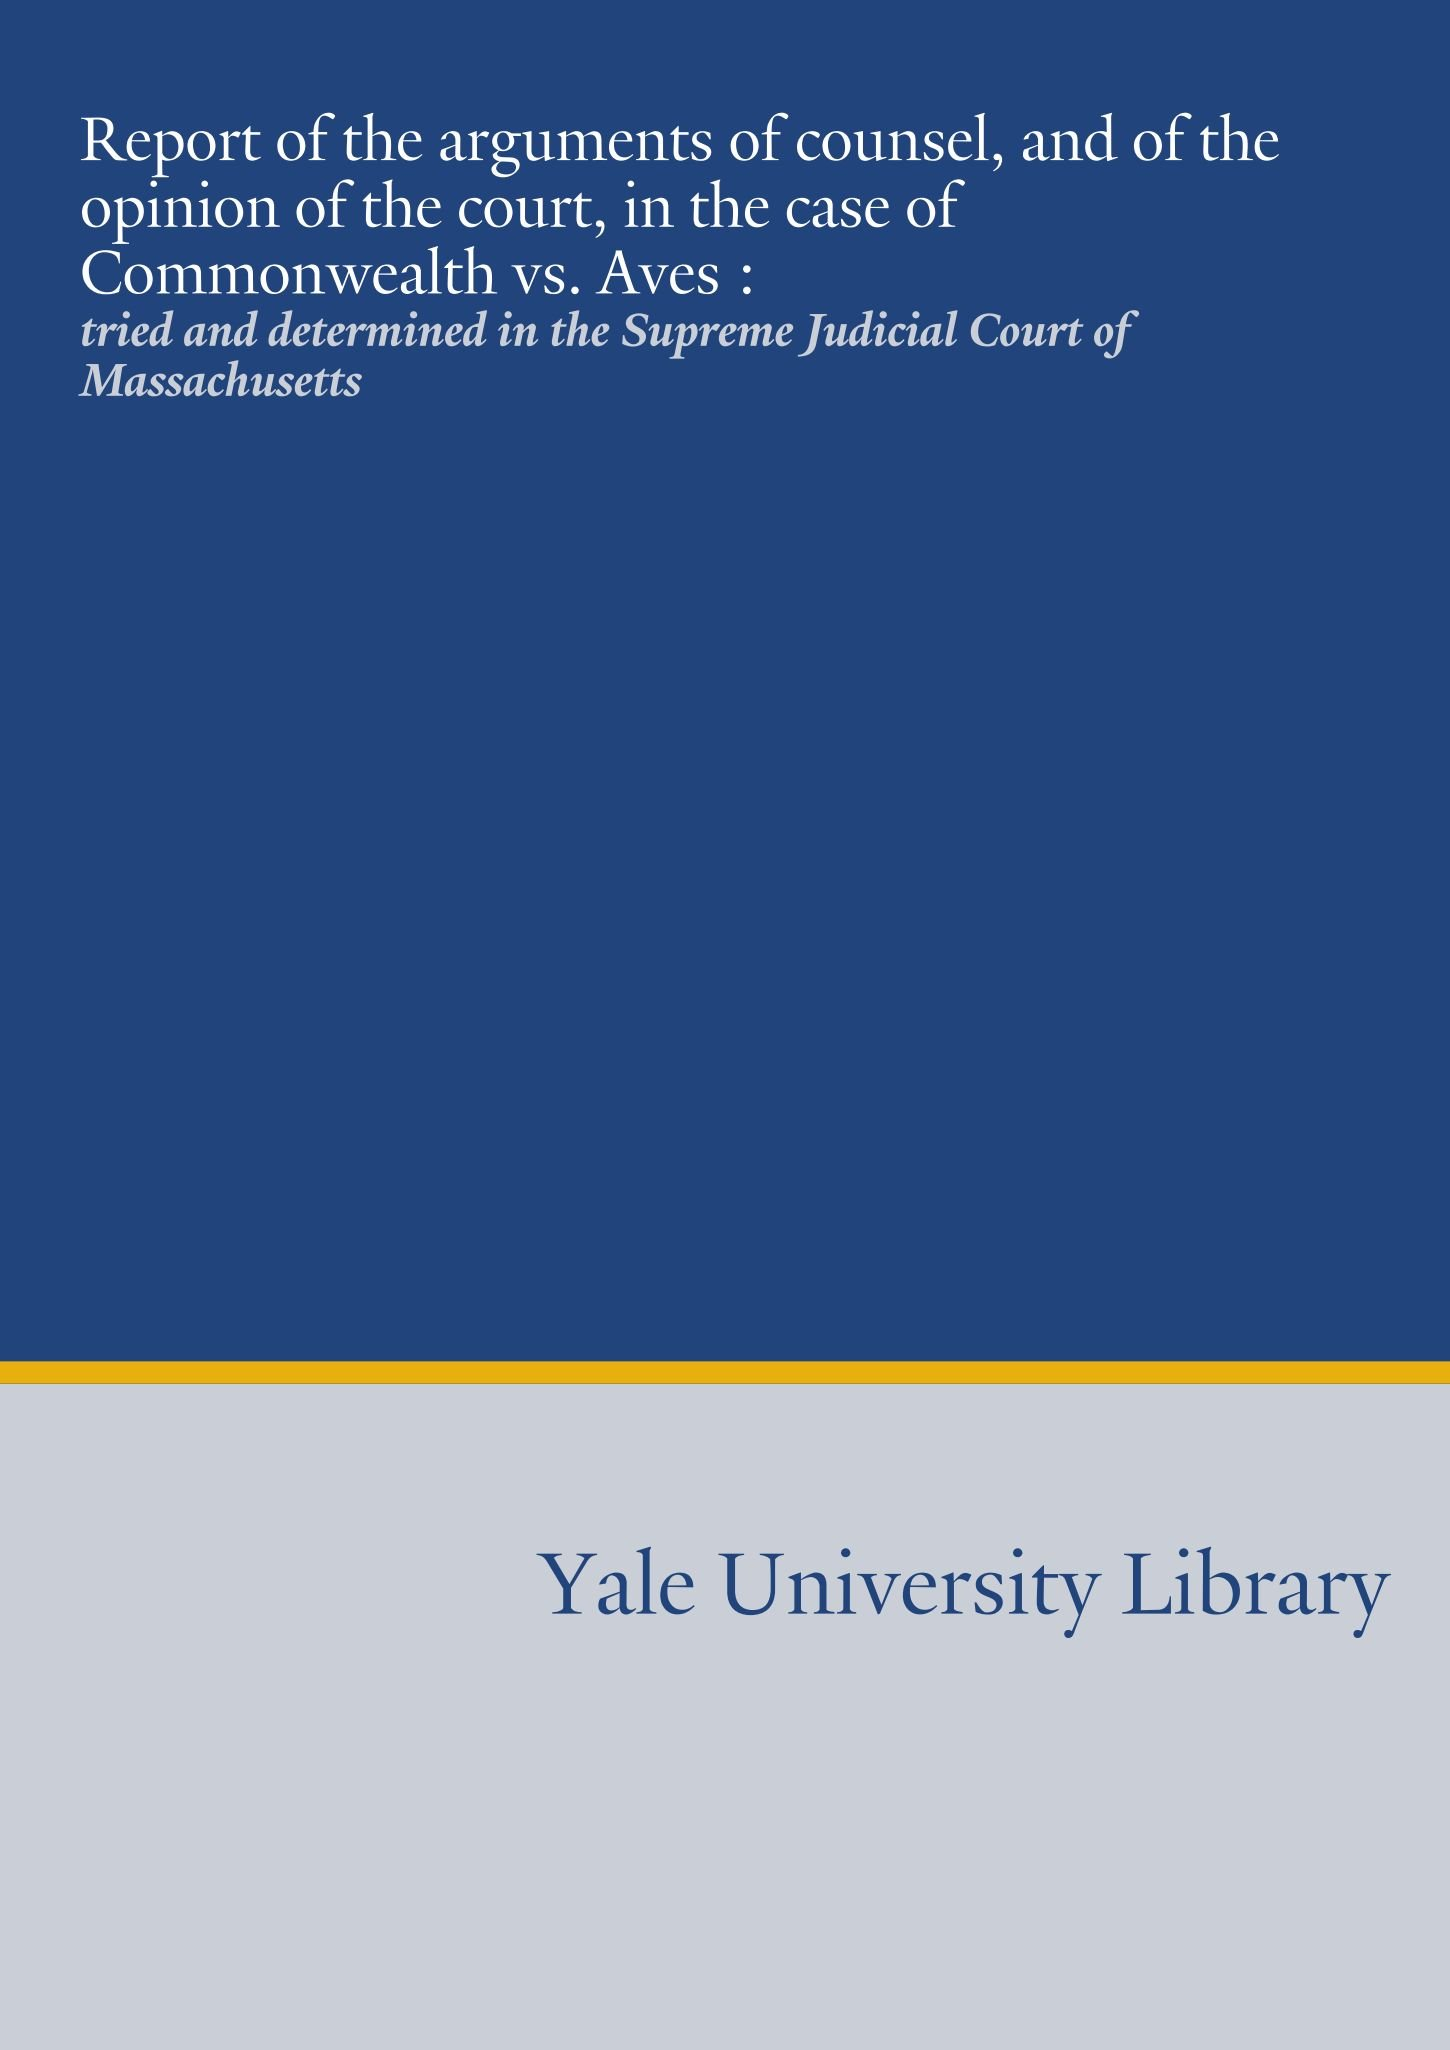 Report of the arguments of counsel, and of the opinion of the court, in the case of Commonwealth vs. Aves :: tried and determined in the Supreme Judicial Court of Massachusetts PDF